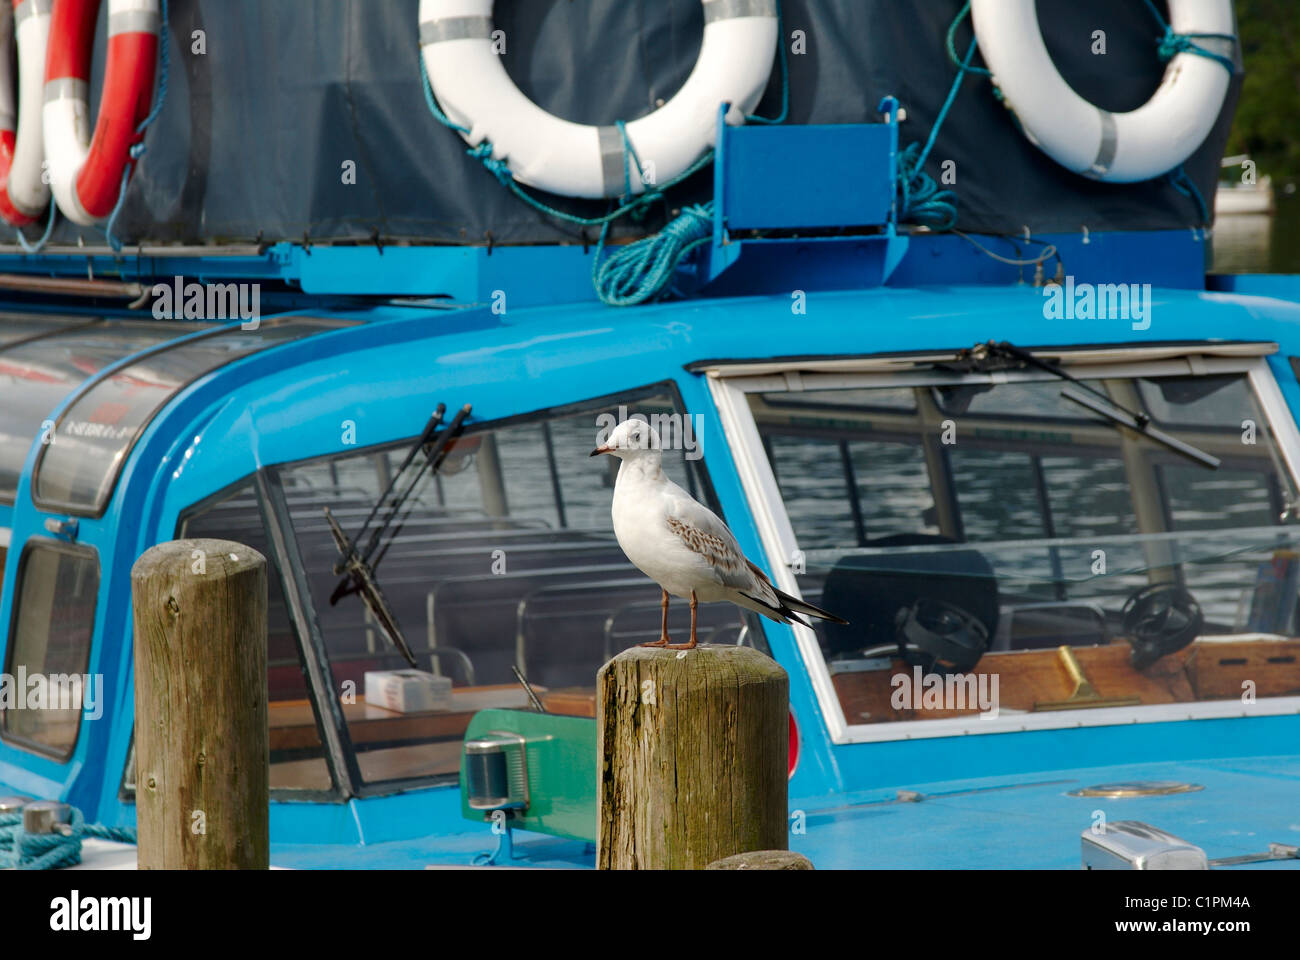 England, Cumbria, Windermere, Seagull sitting on wooden post with boat in background - Stock Image